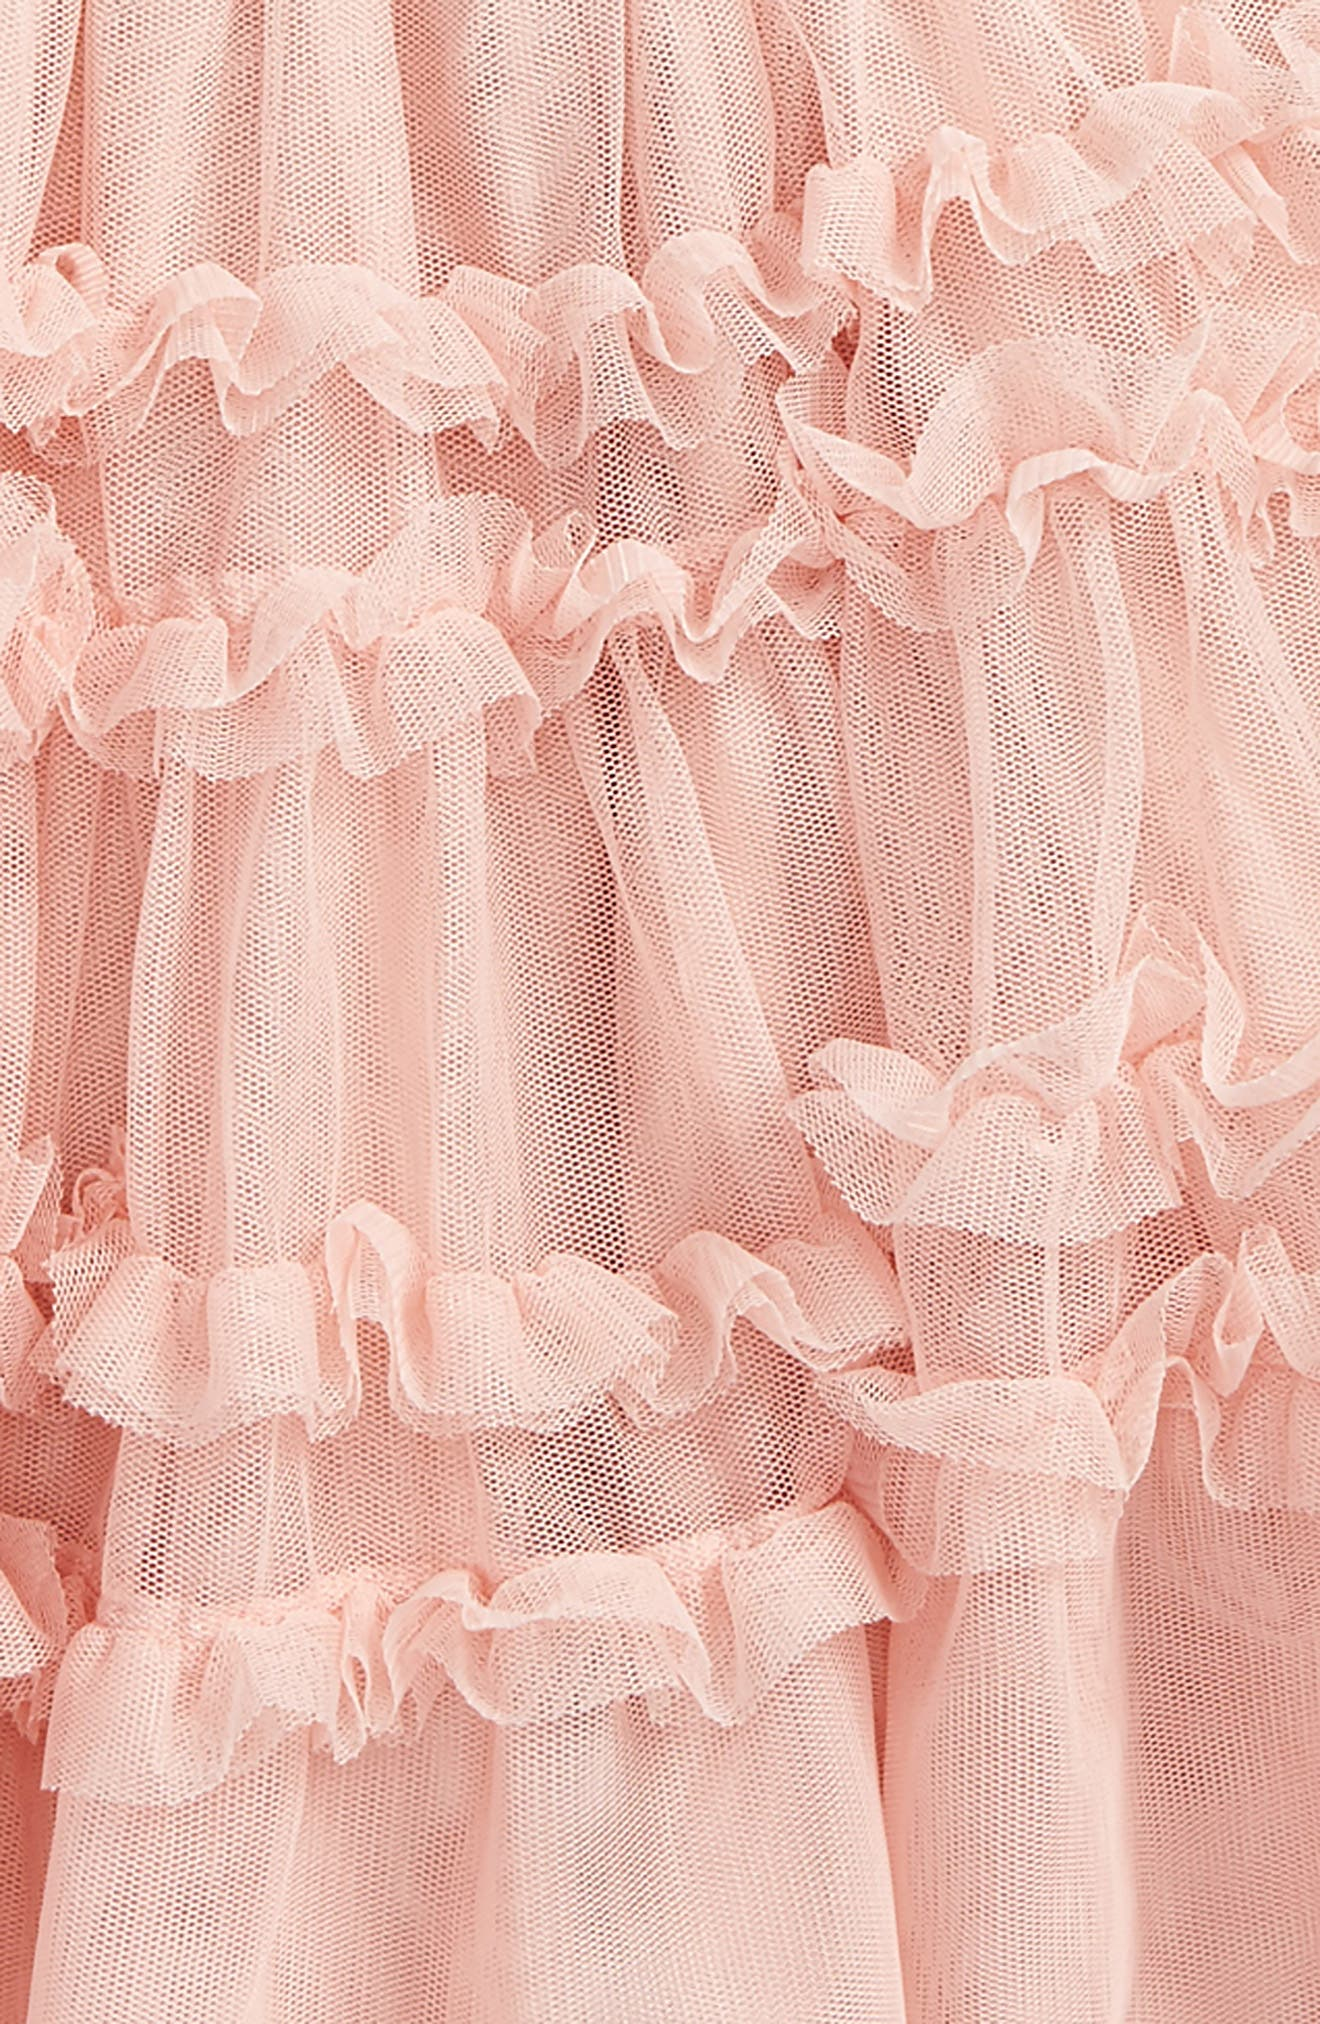 Ruffle Tulle Skirt,                             Alternate thumbnail 2, color,                             Provence Dusty Pink Pnk